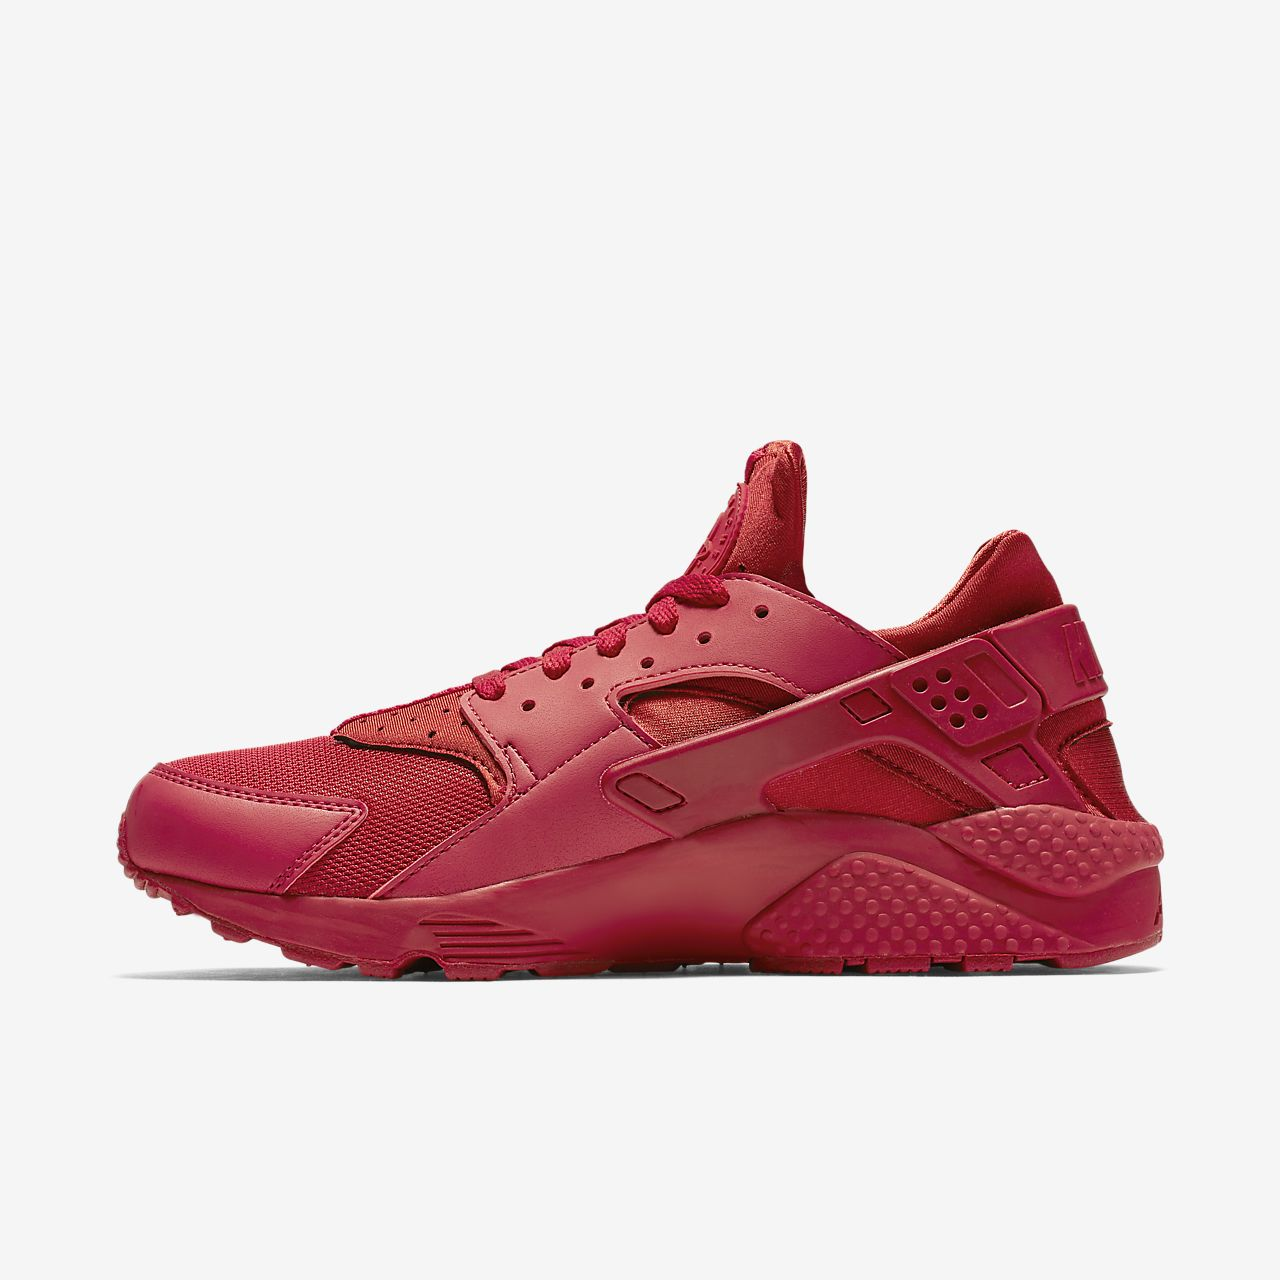 96bba0f8b70 Nike Air Huarache Men s Shoe. Nike.com